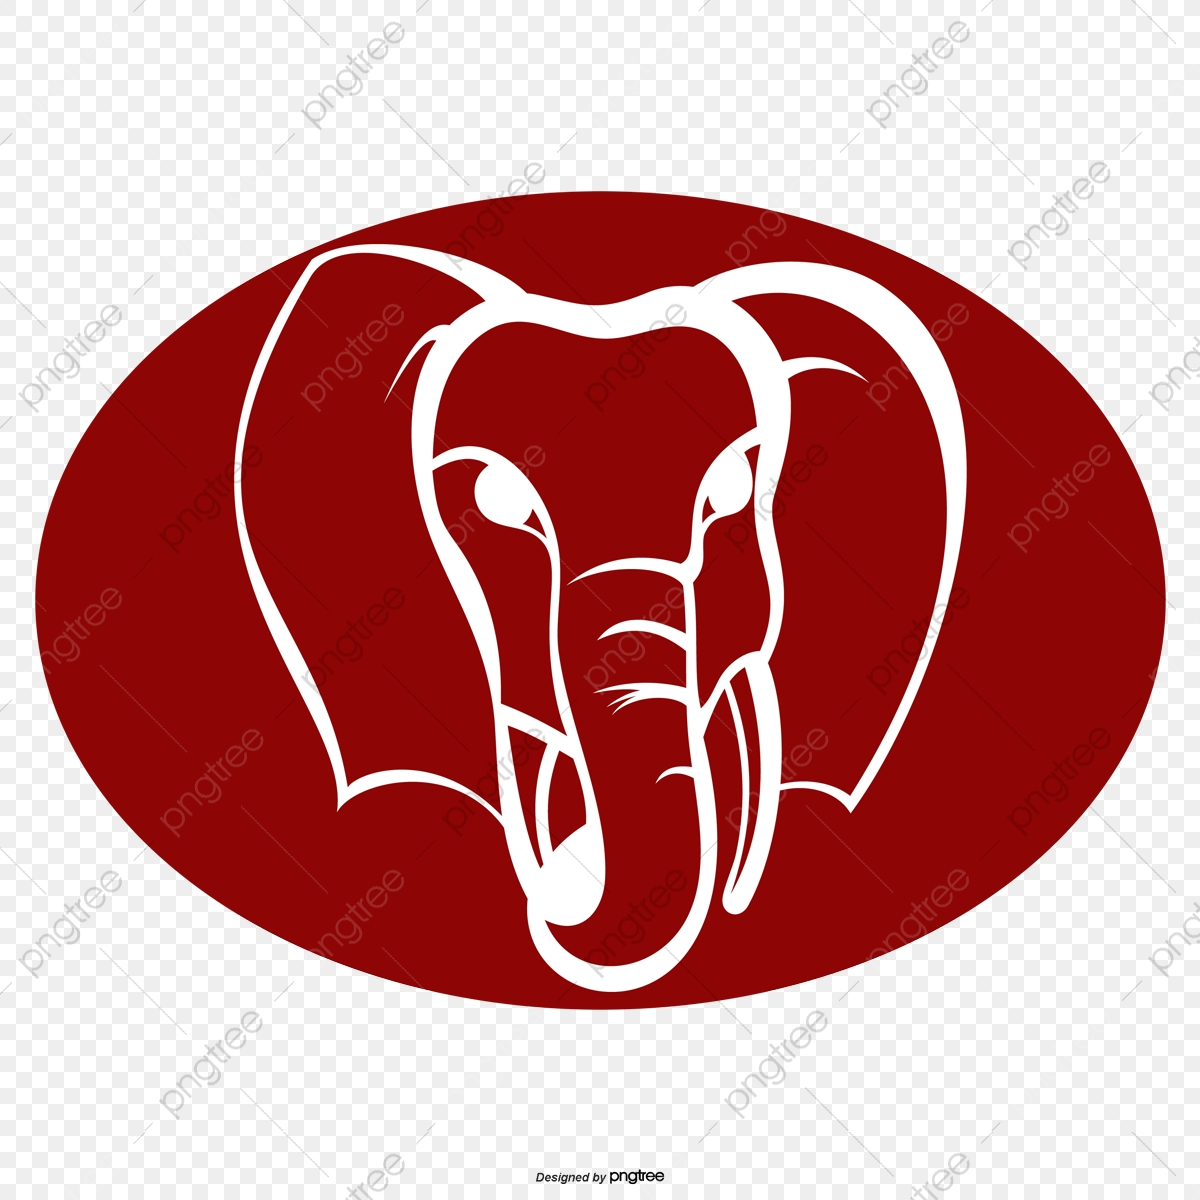 Vector Cartoon Elephant Head Elephant Logo Cartoon Vector Elephant Vector Head Vector Png Transparent Clipart Image And Psd File For Free Download Free vector graphic of an elephant's head with a large trunk. https pngtree com freepng vector cartoon elephant head elephant logo 3193594 html